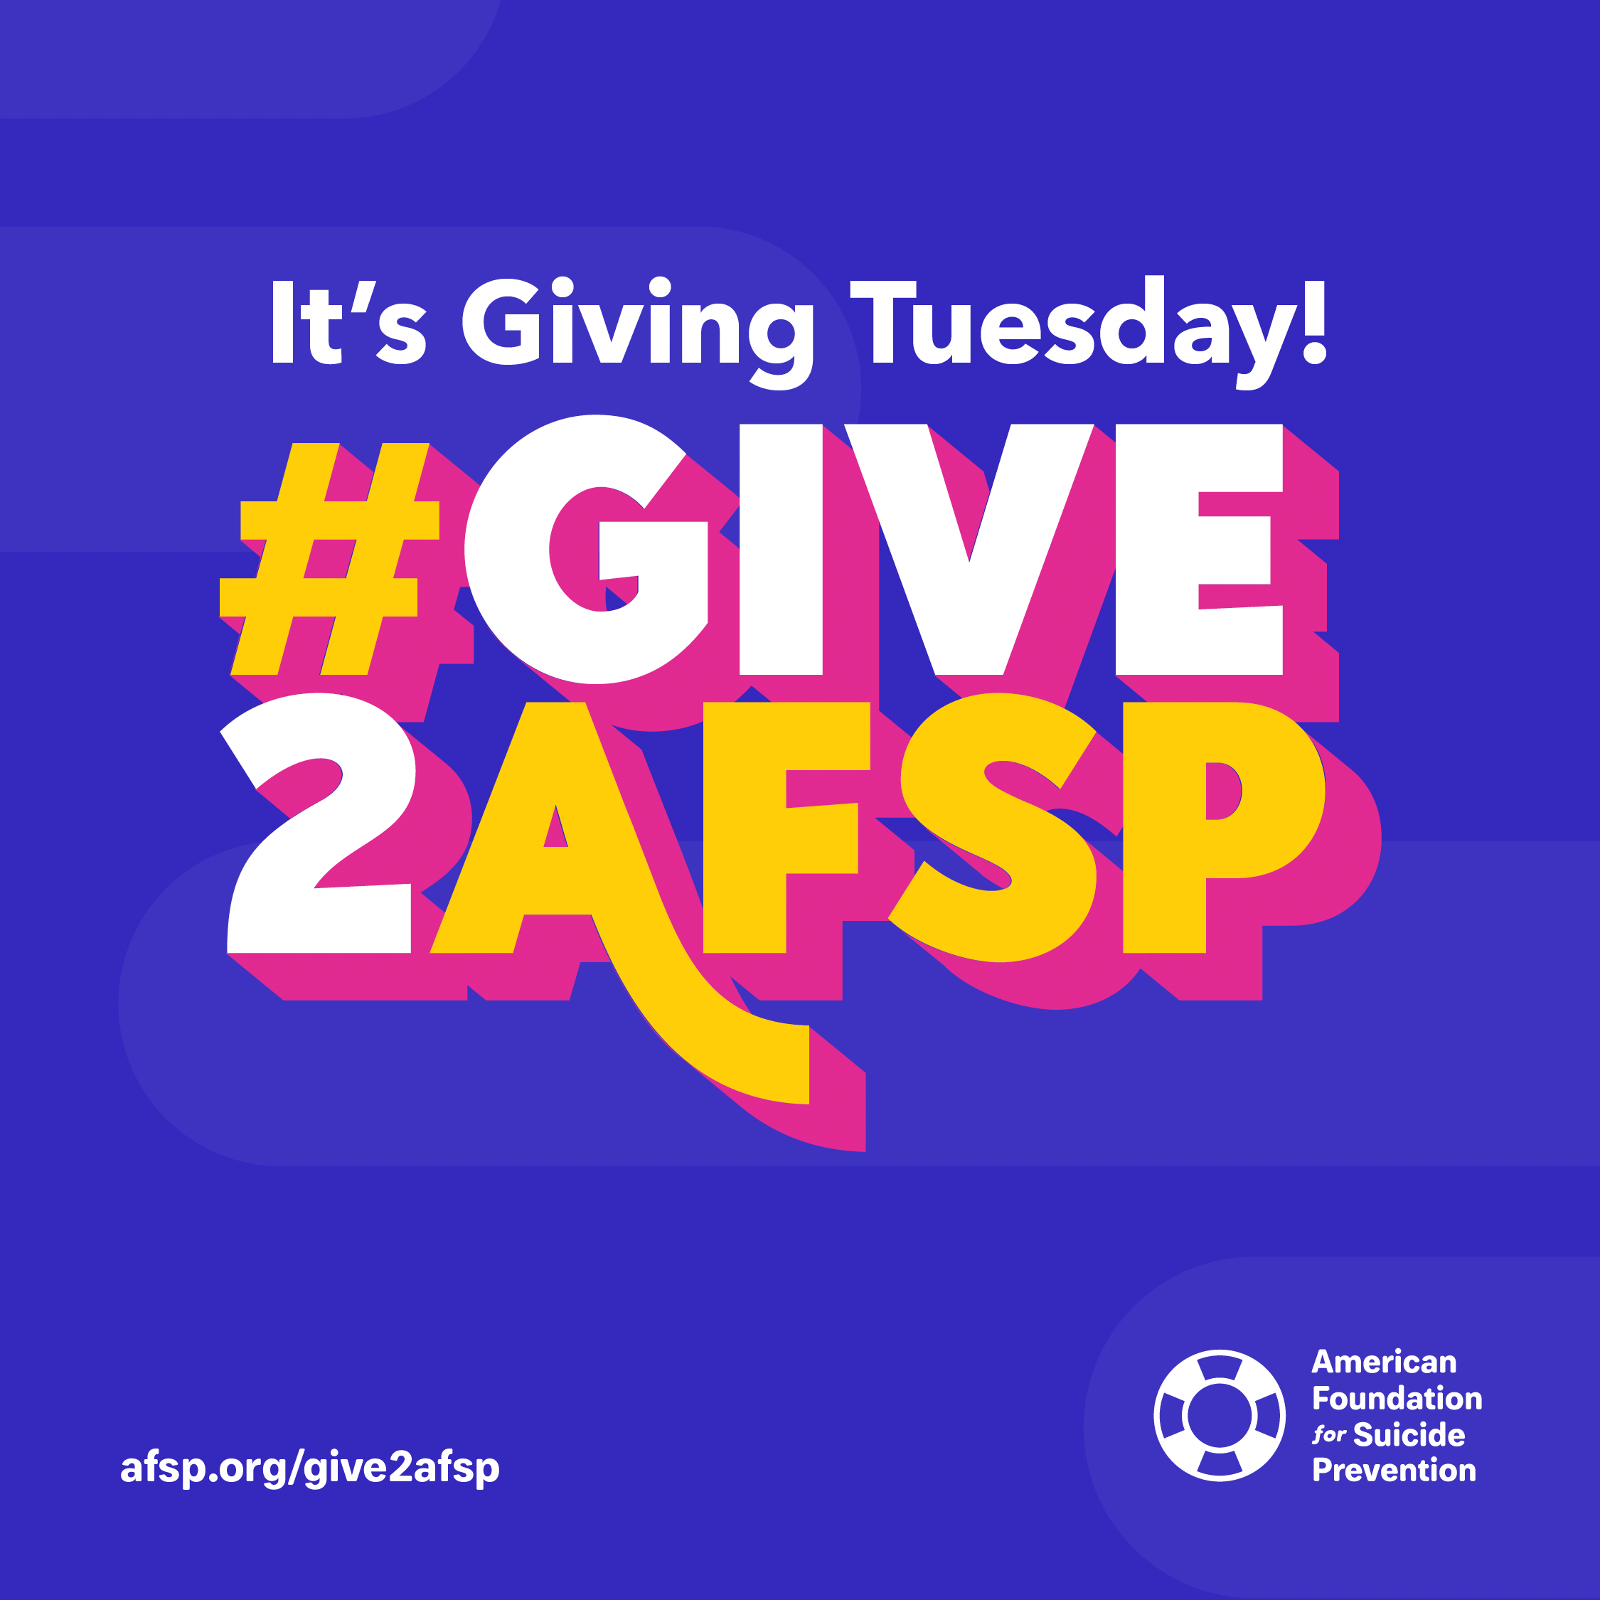 It's Giving Tuesday! #Give2AFSP